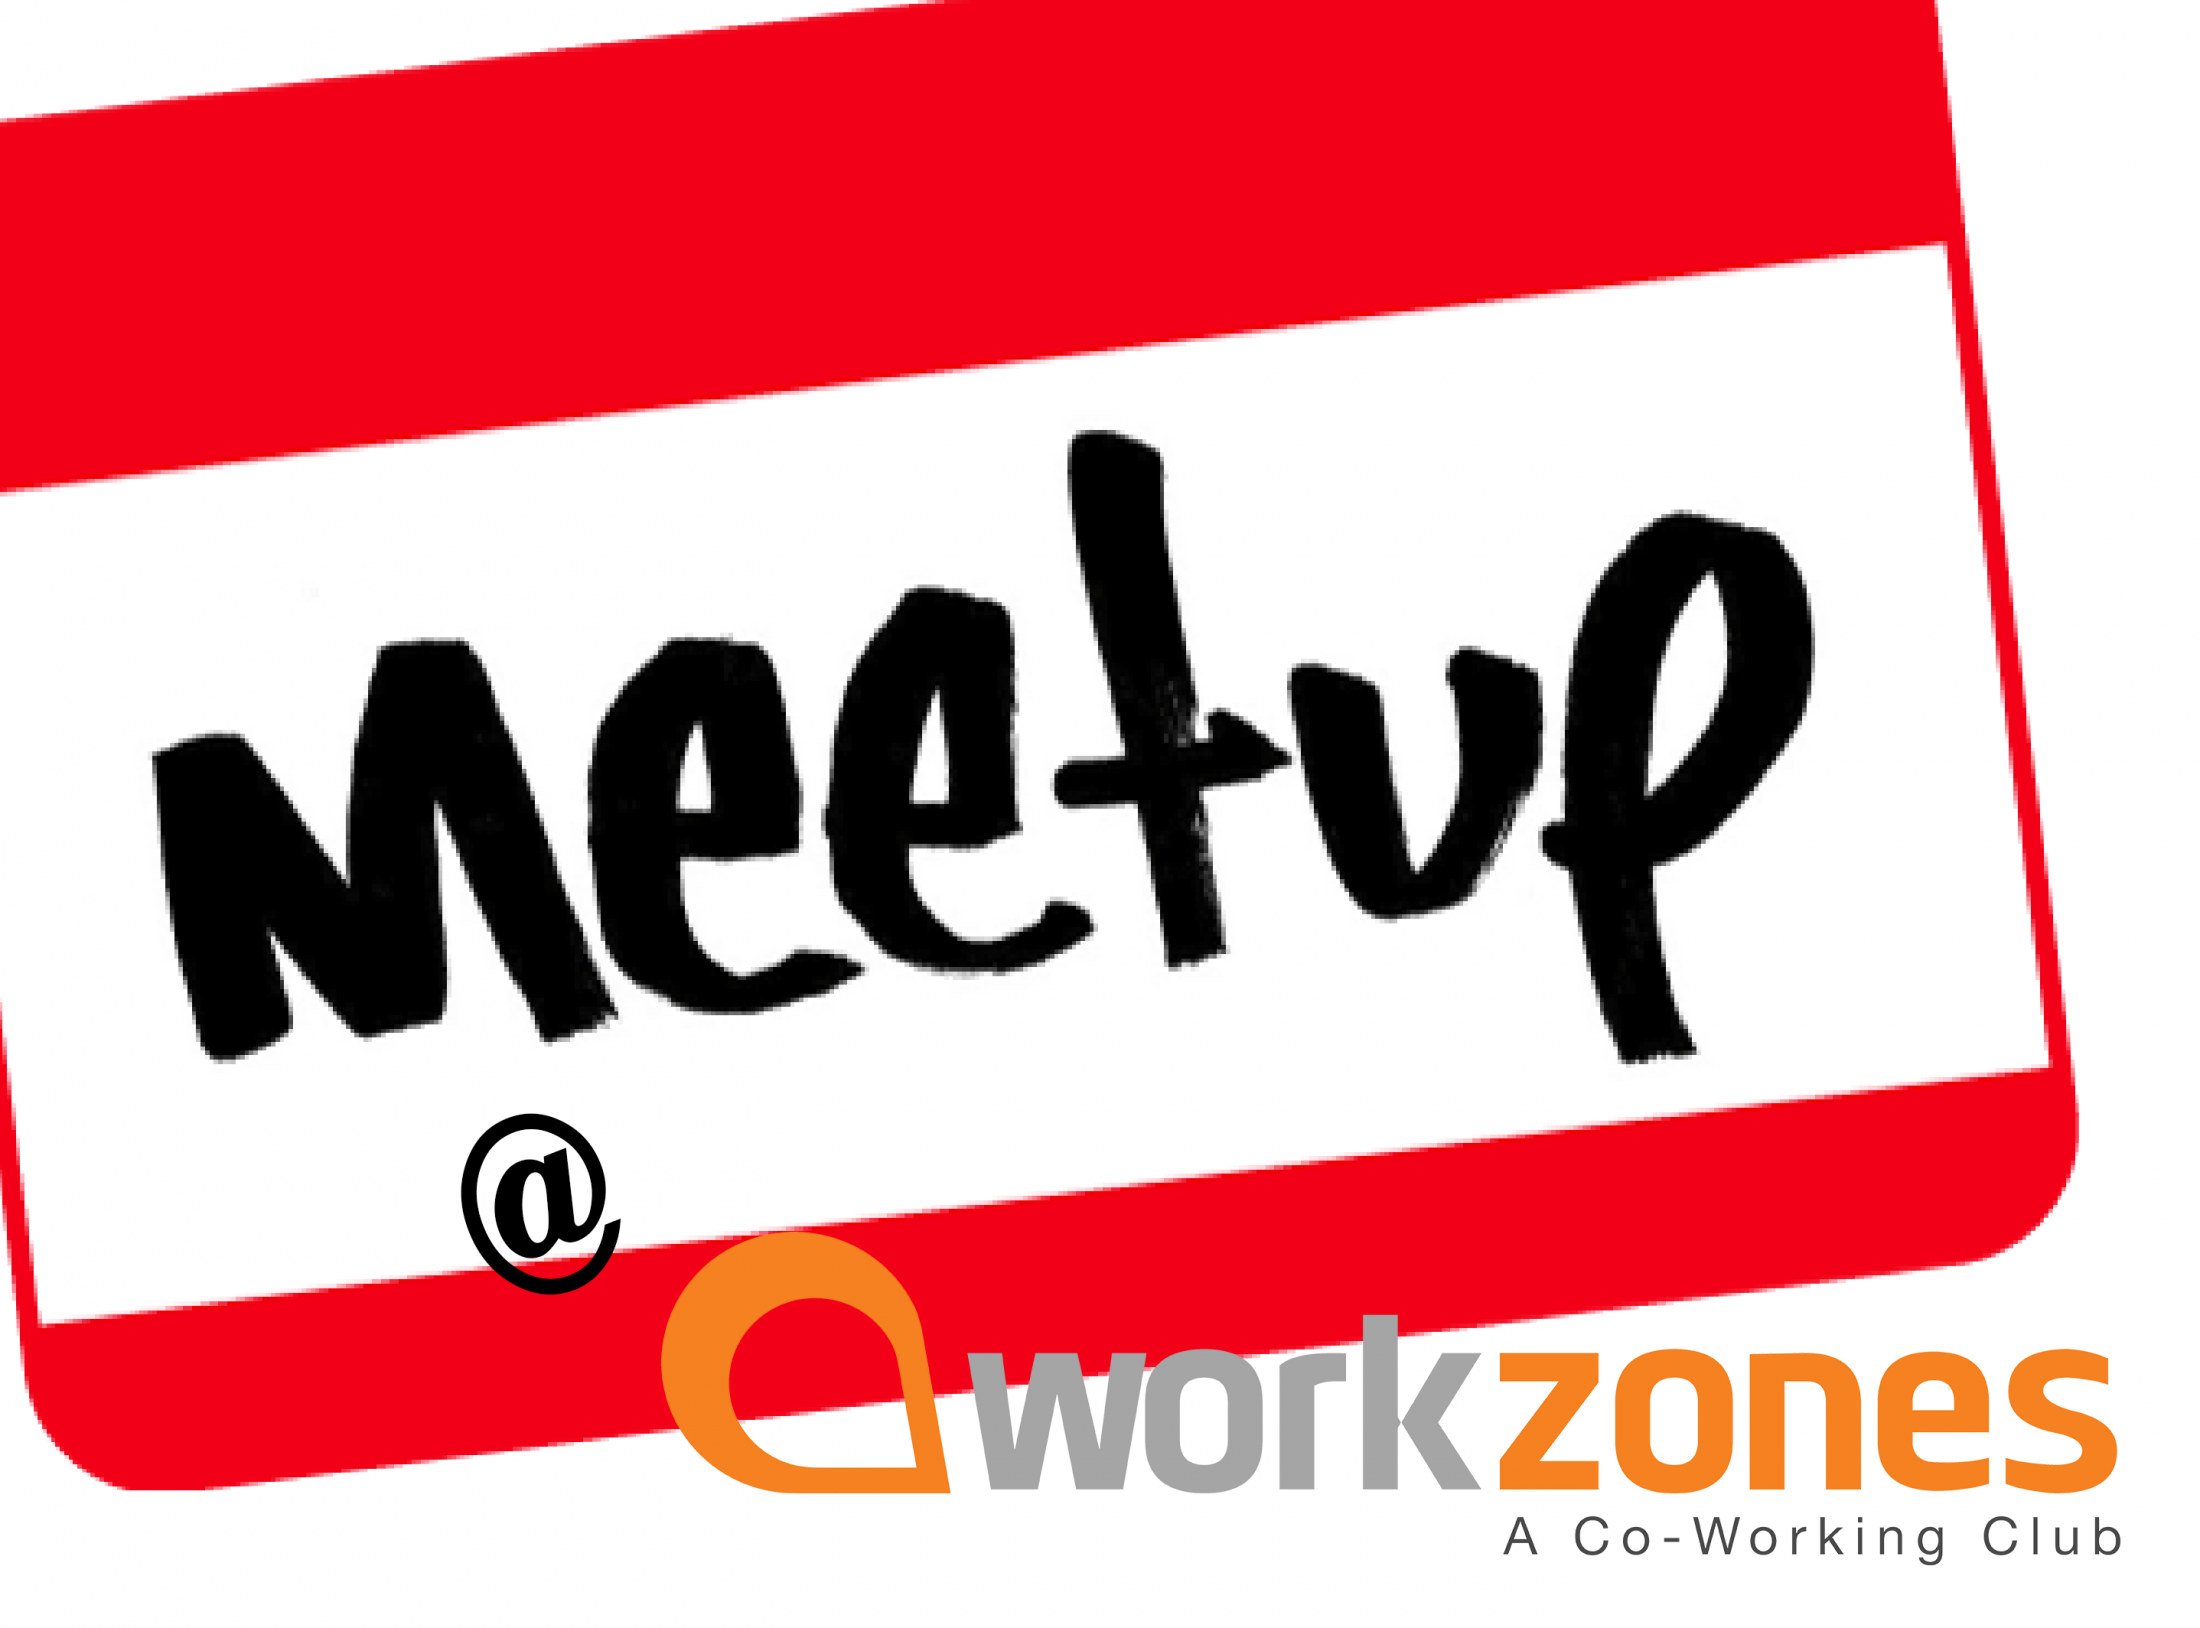 Meetup at Workzones